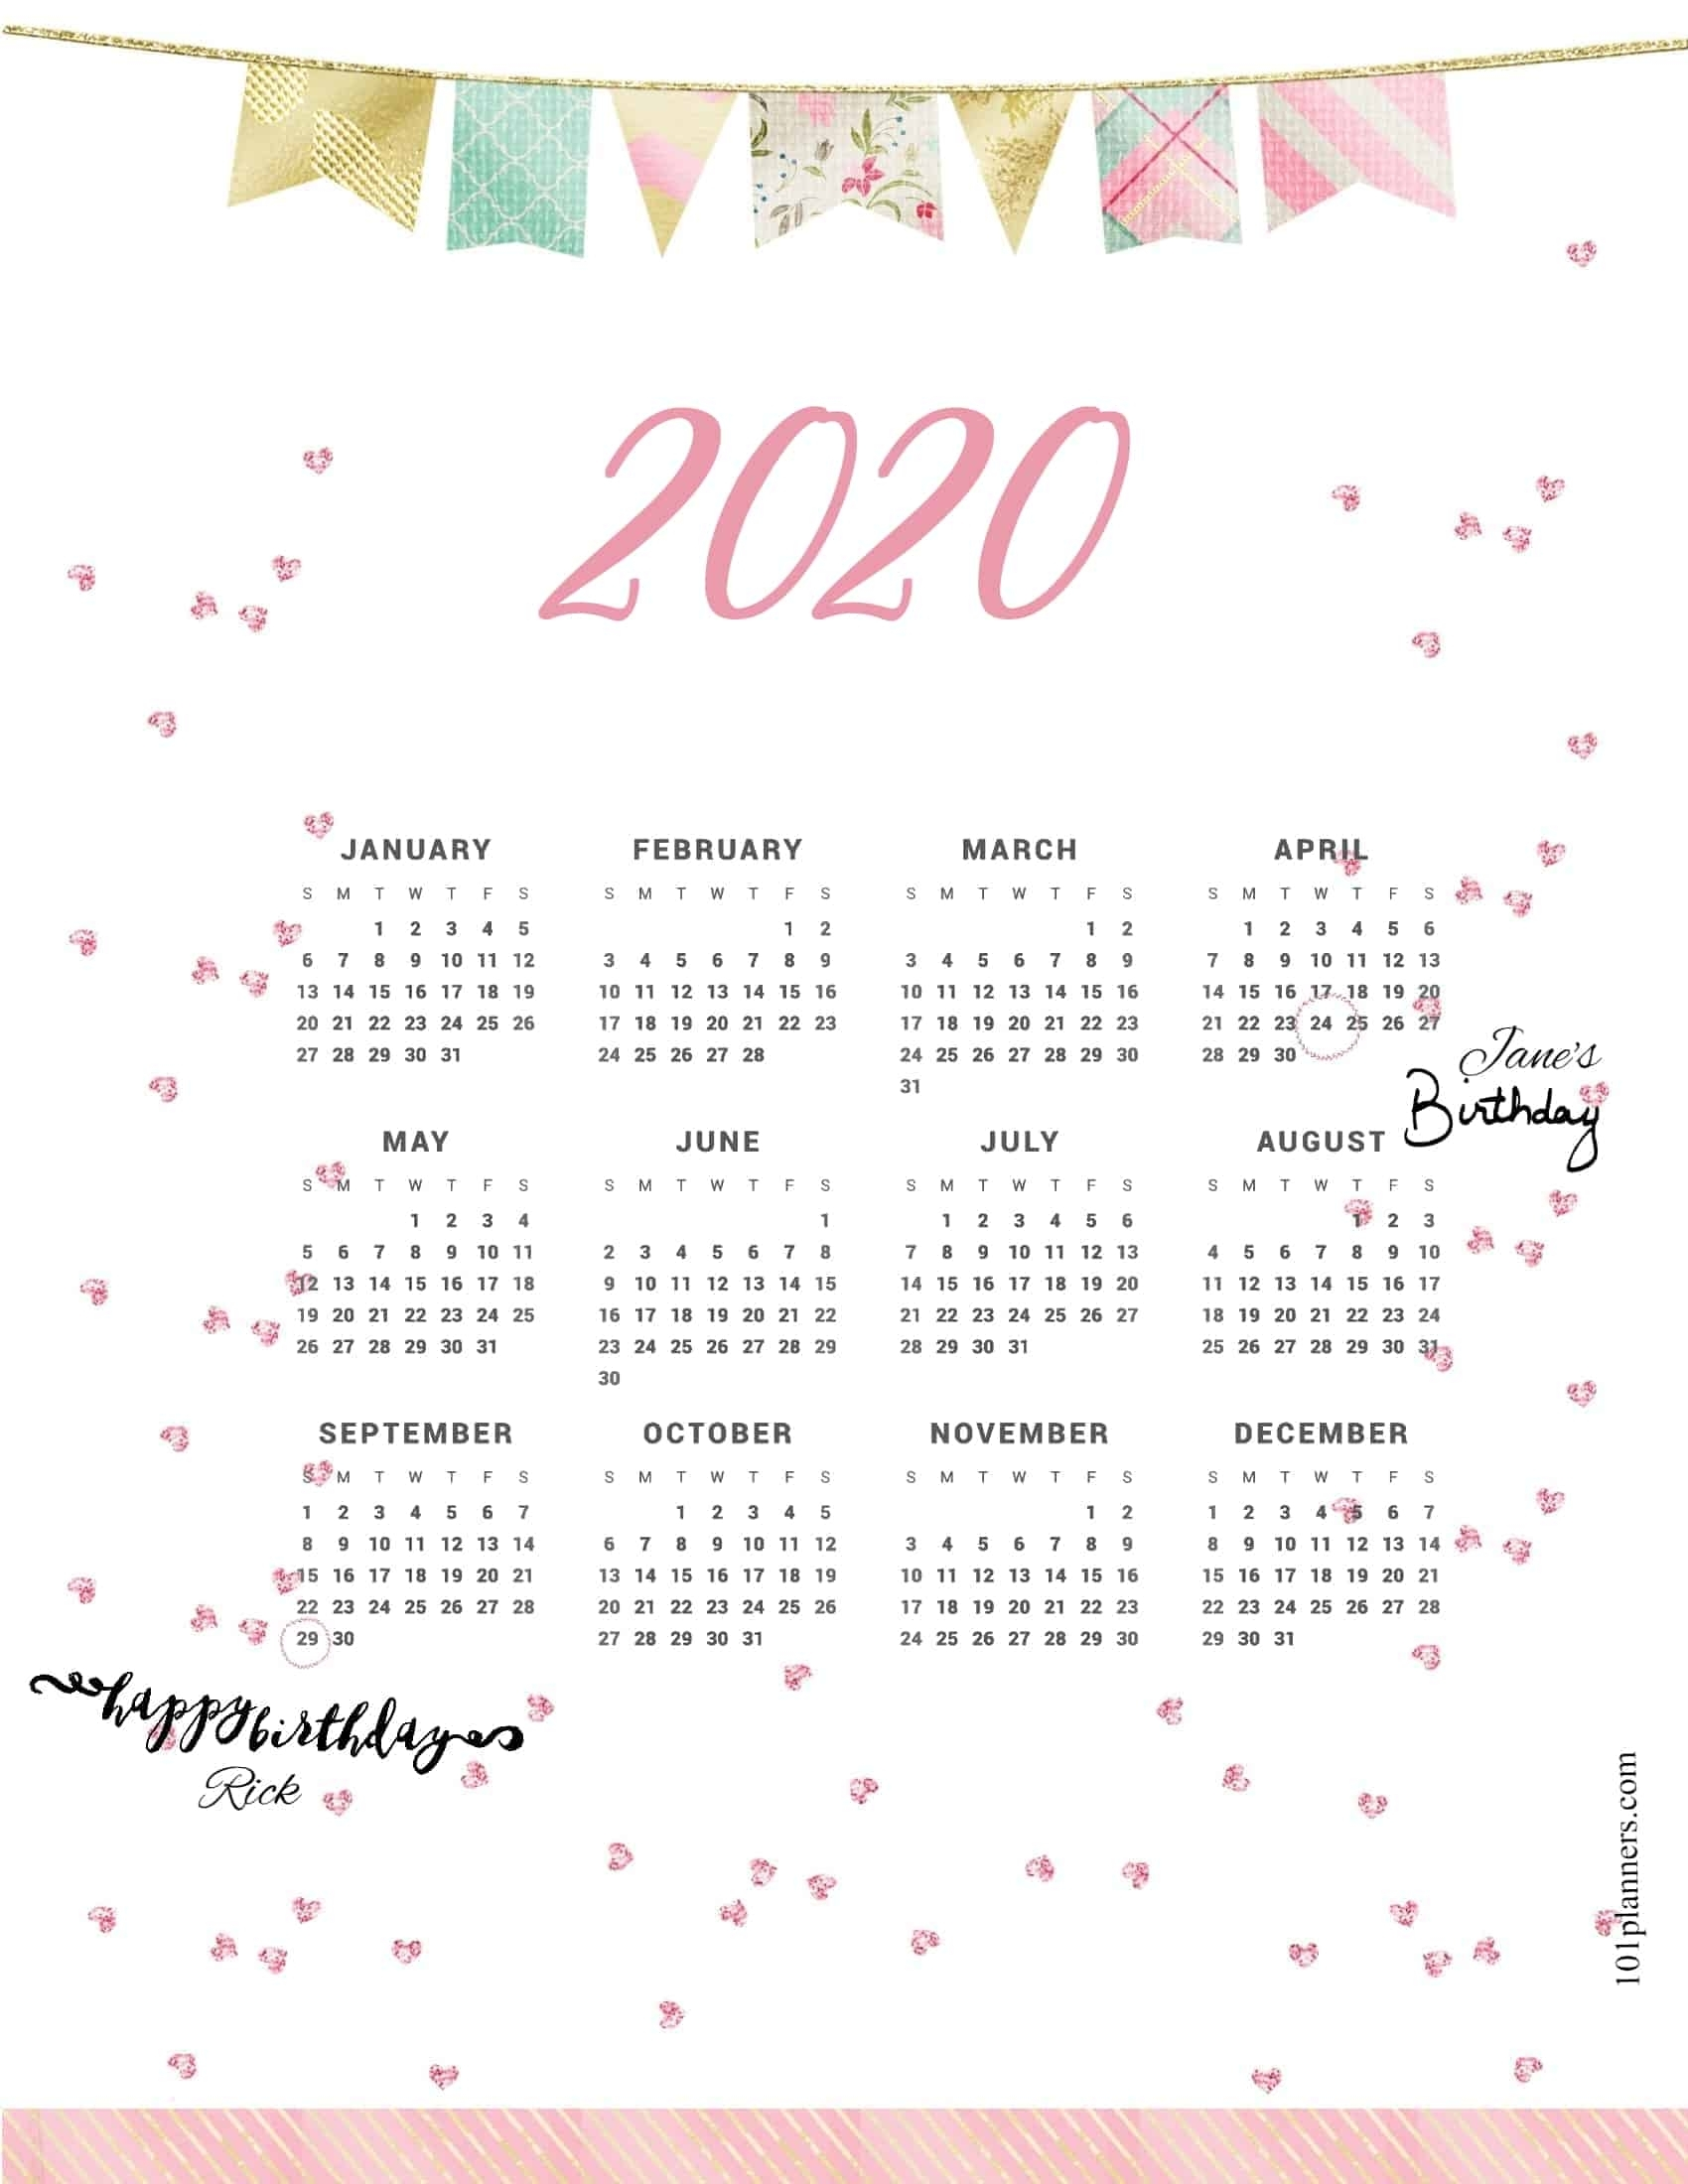 Free Printable 2020 Yearly Calendar At A Glance | 101 intended for 2020 Whole Year At A Glance